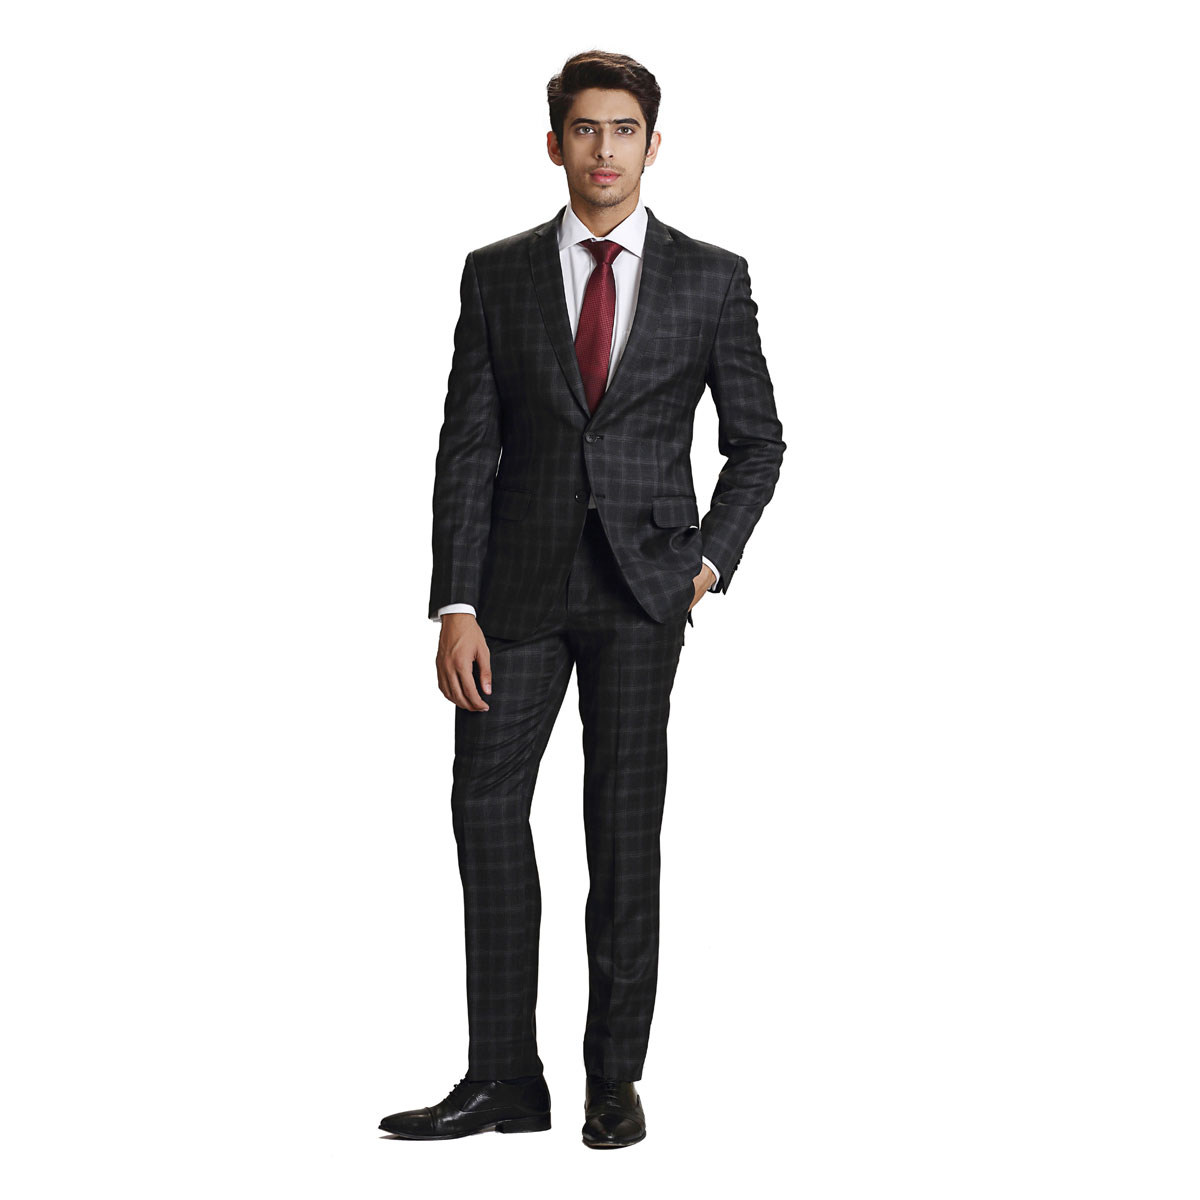 Naughty Black 'n' Grey Check Suit - Best Bespoke Suits. Premium ...